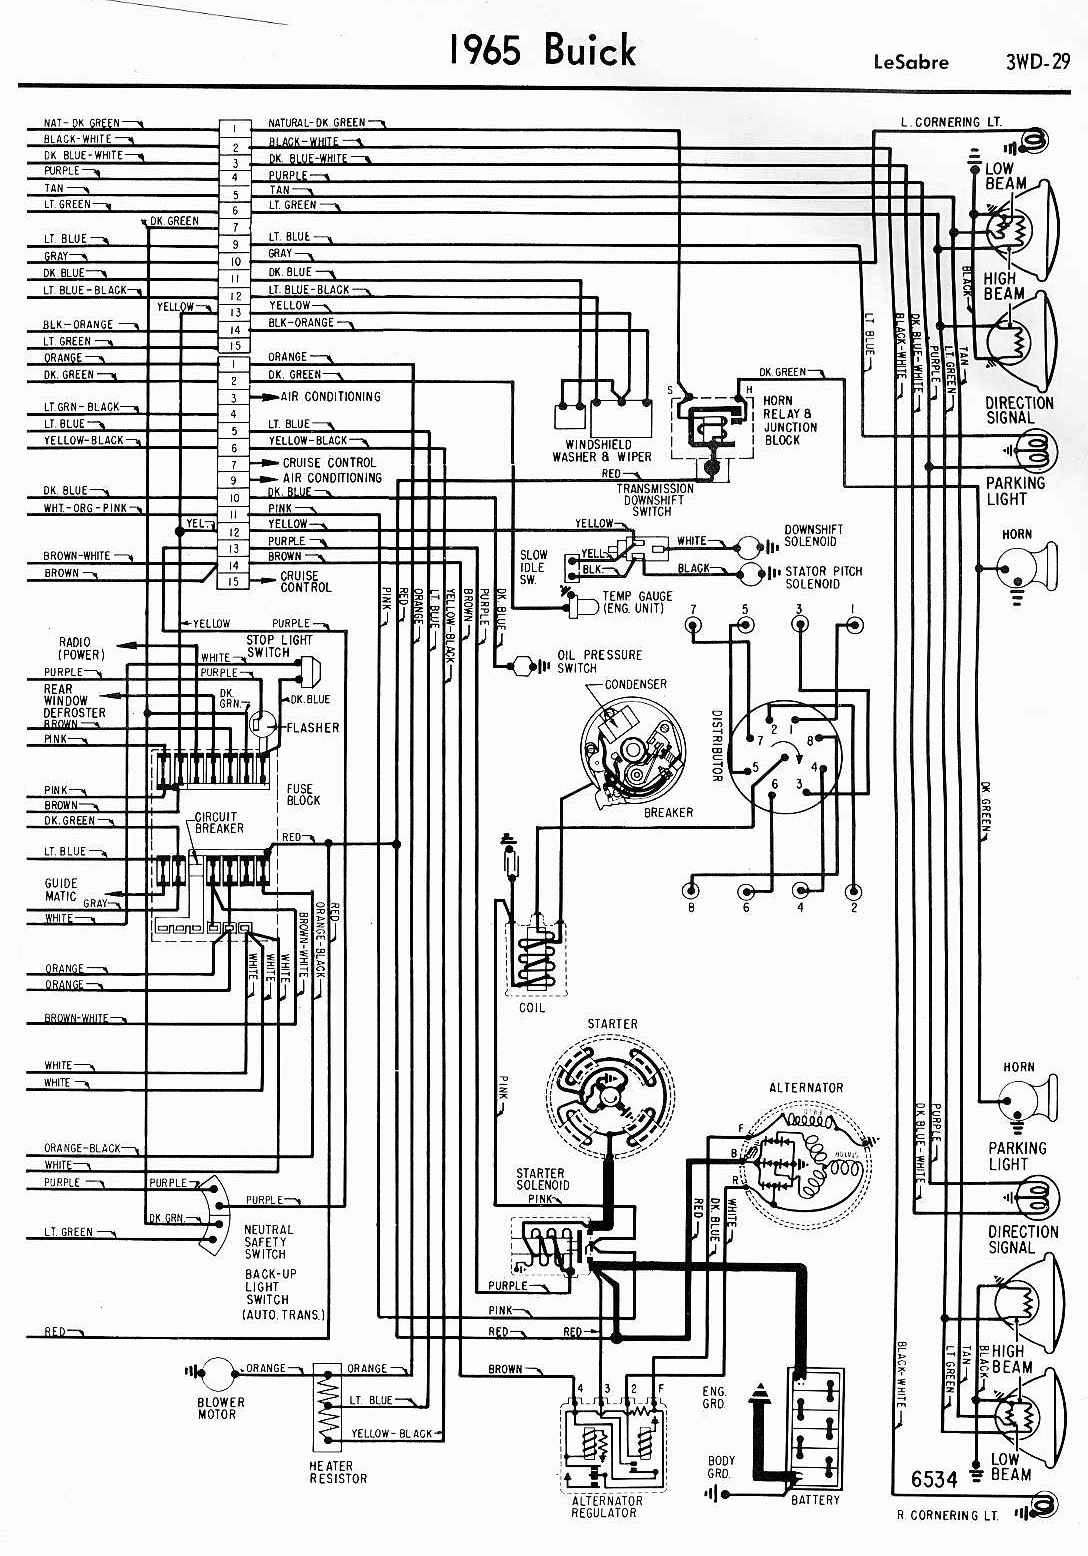 2005 Buick Rendezvous Window Wiring Diagrams Free Download Guide Car Manuals Pdf Fault Codes Rh Automotive Net 2004